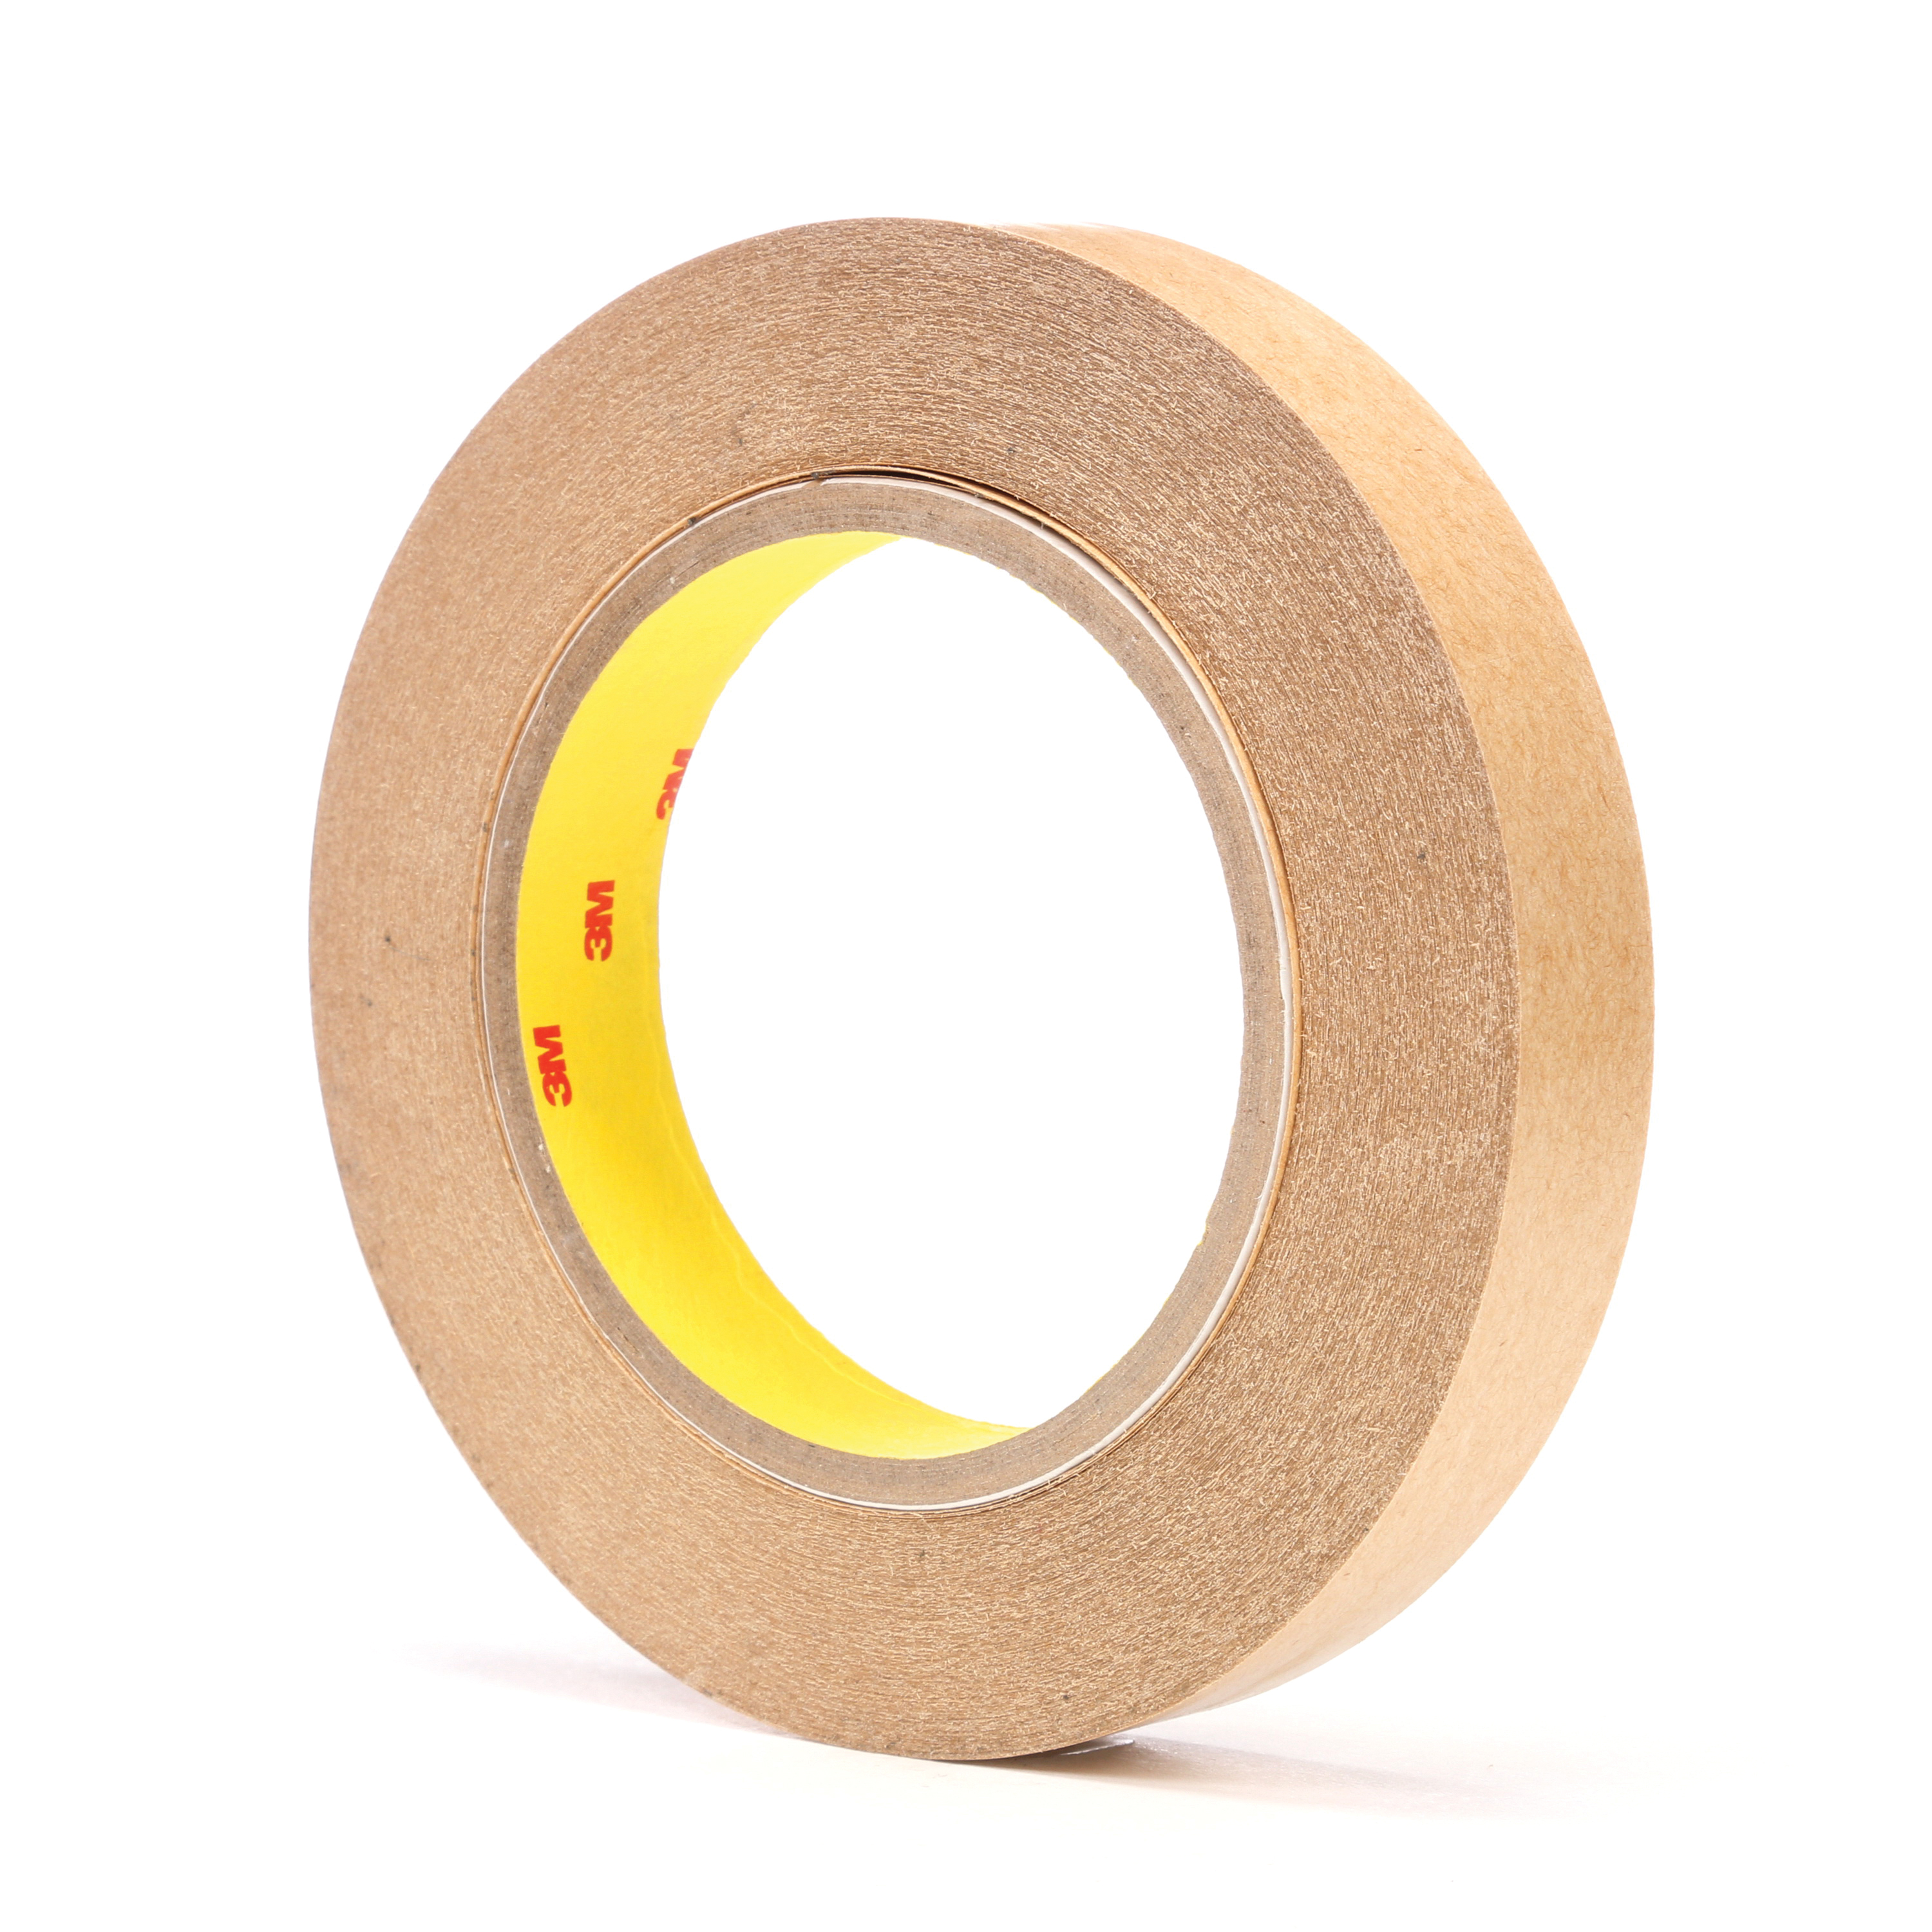 3M™ 021200-03228 Fibered General Purpose High Tack Adhesive Transfer Tape, 60 yd L x 3/4 in W, 2 mil THK, 2 mil 400 Acrylic Adhesive, Clear